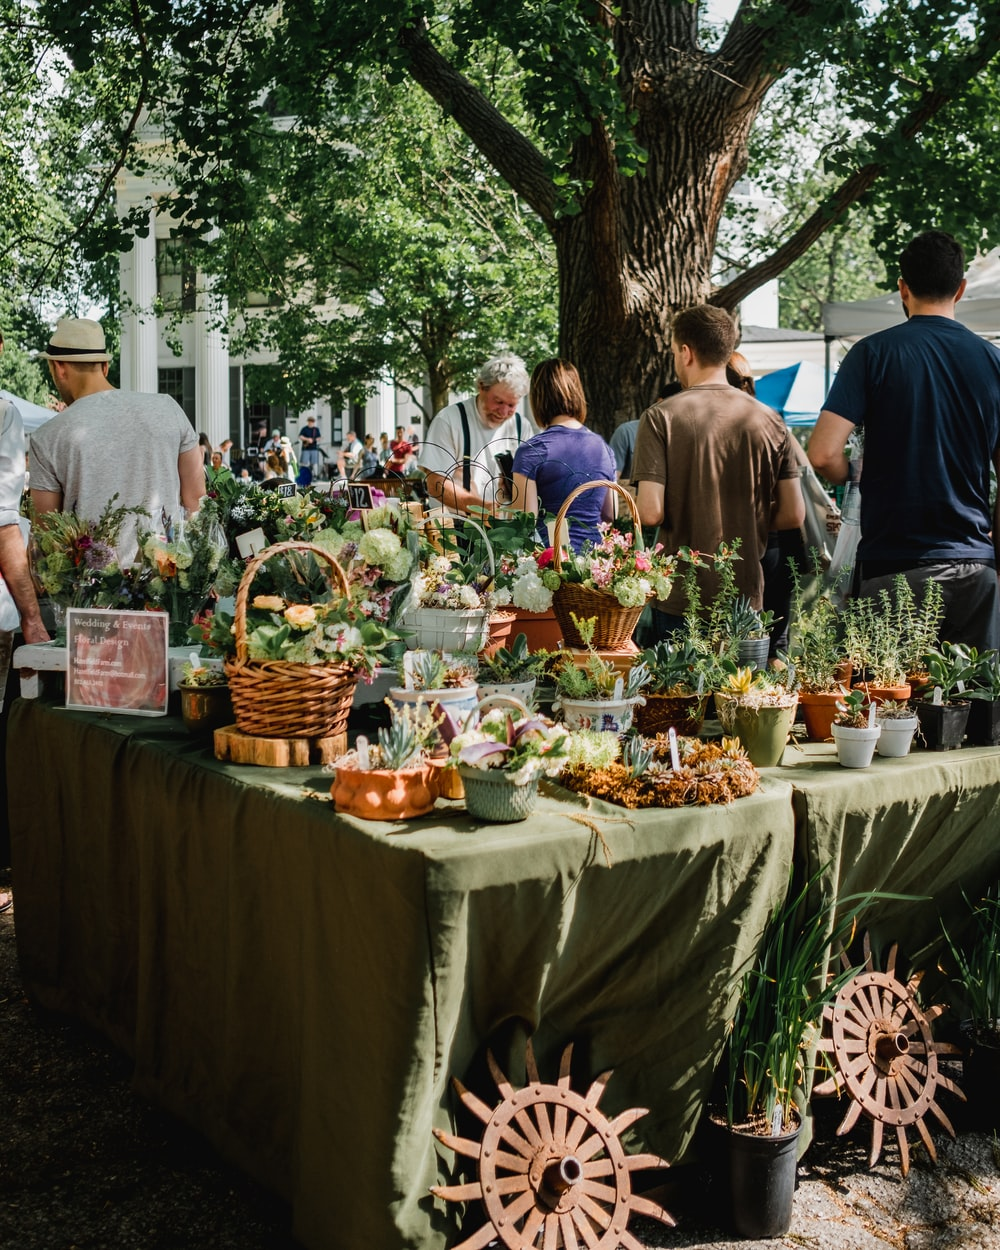 people beside assorted plants on table